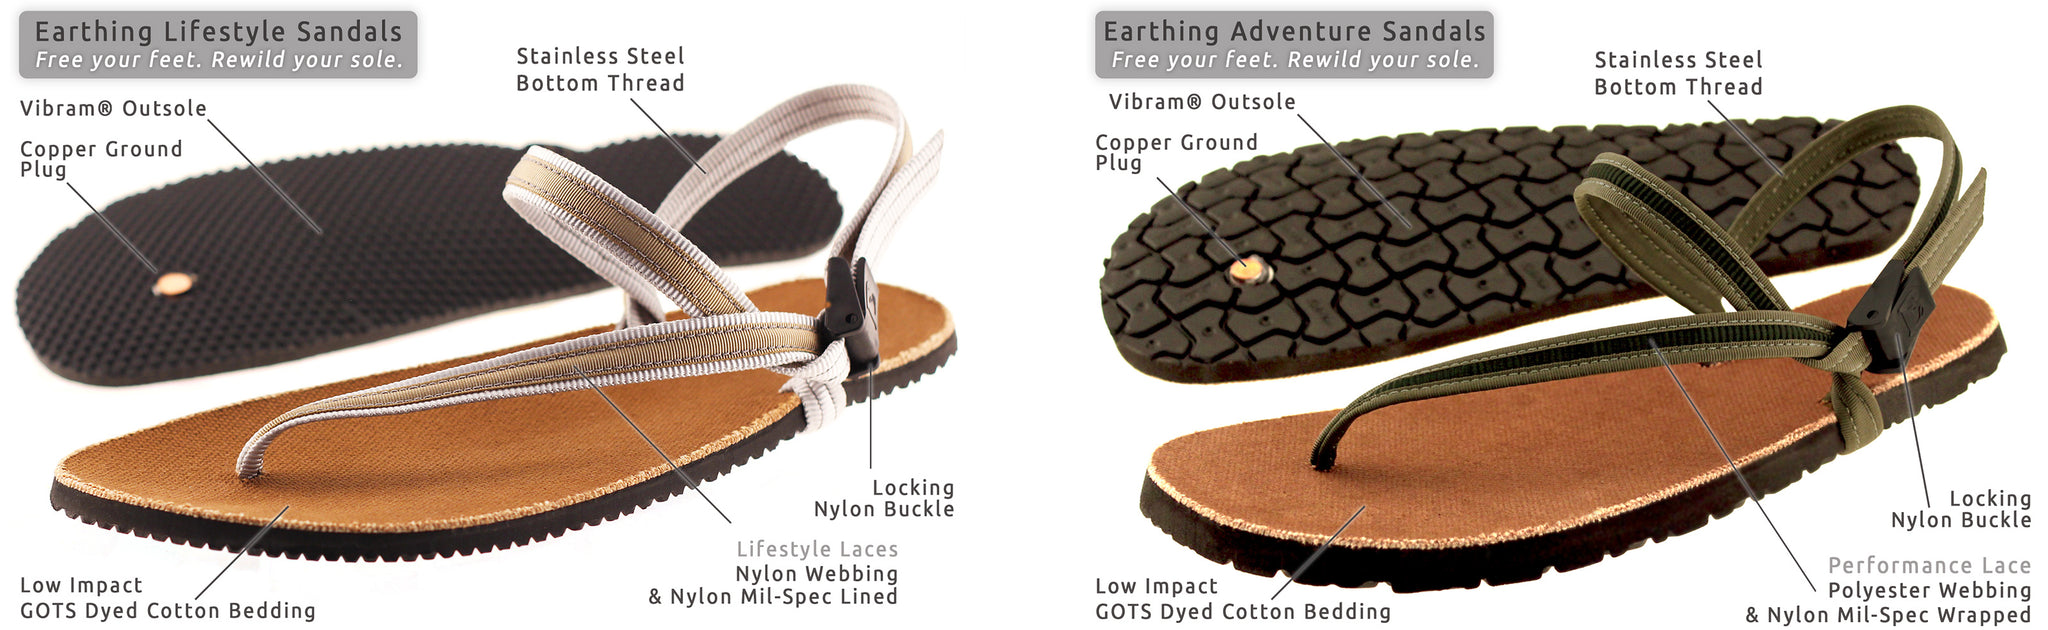 lifestyle adventure minimalist grounding sandal comparison